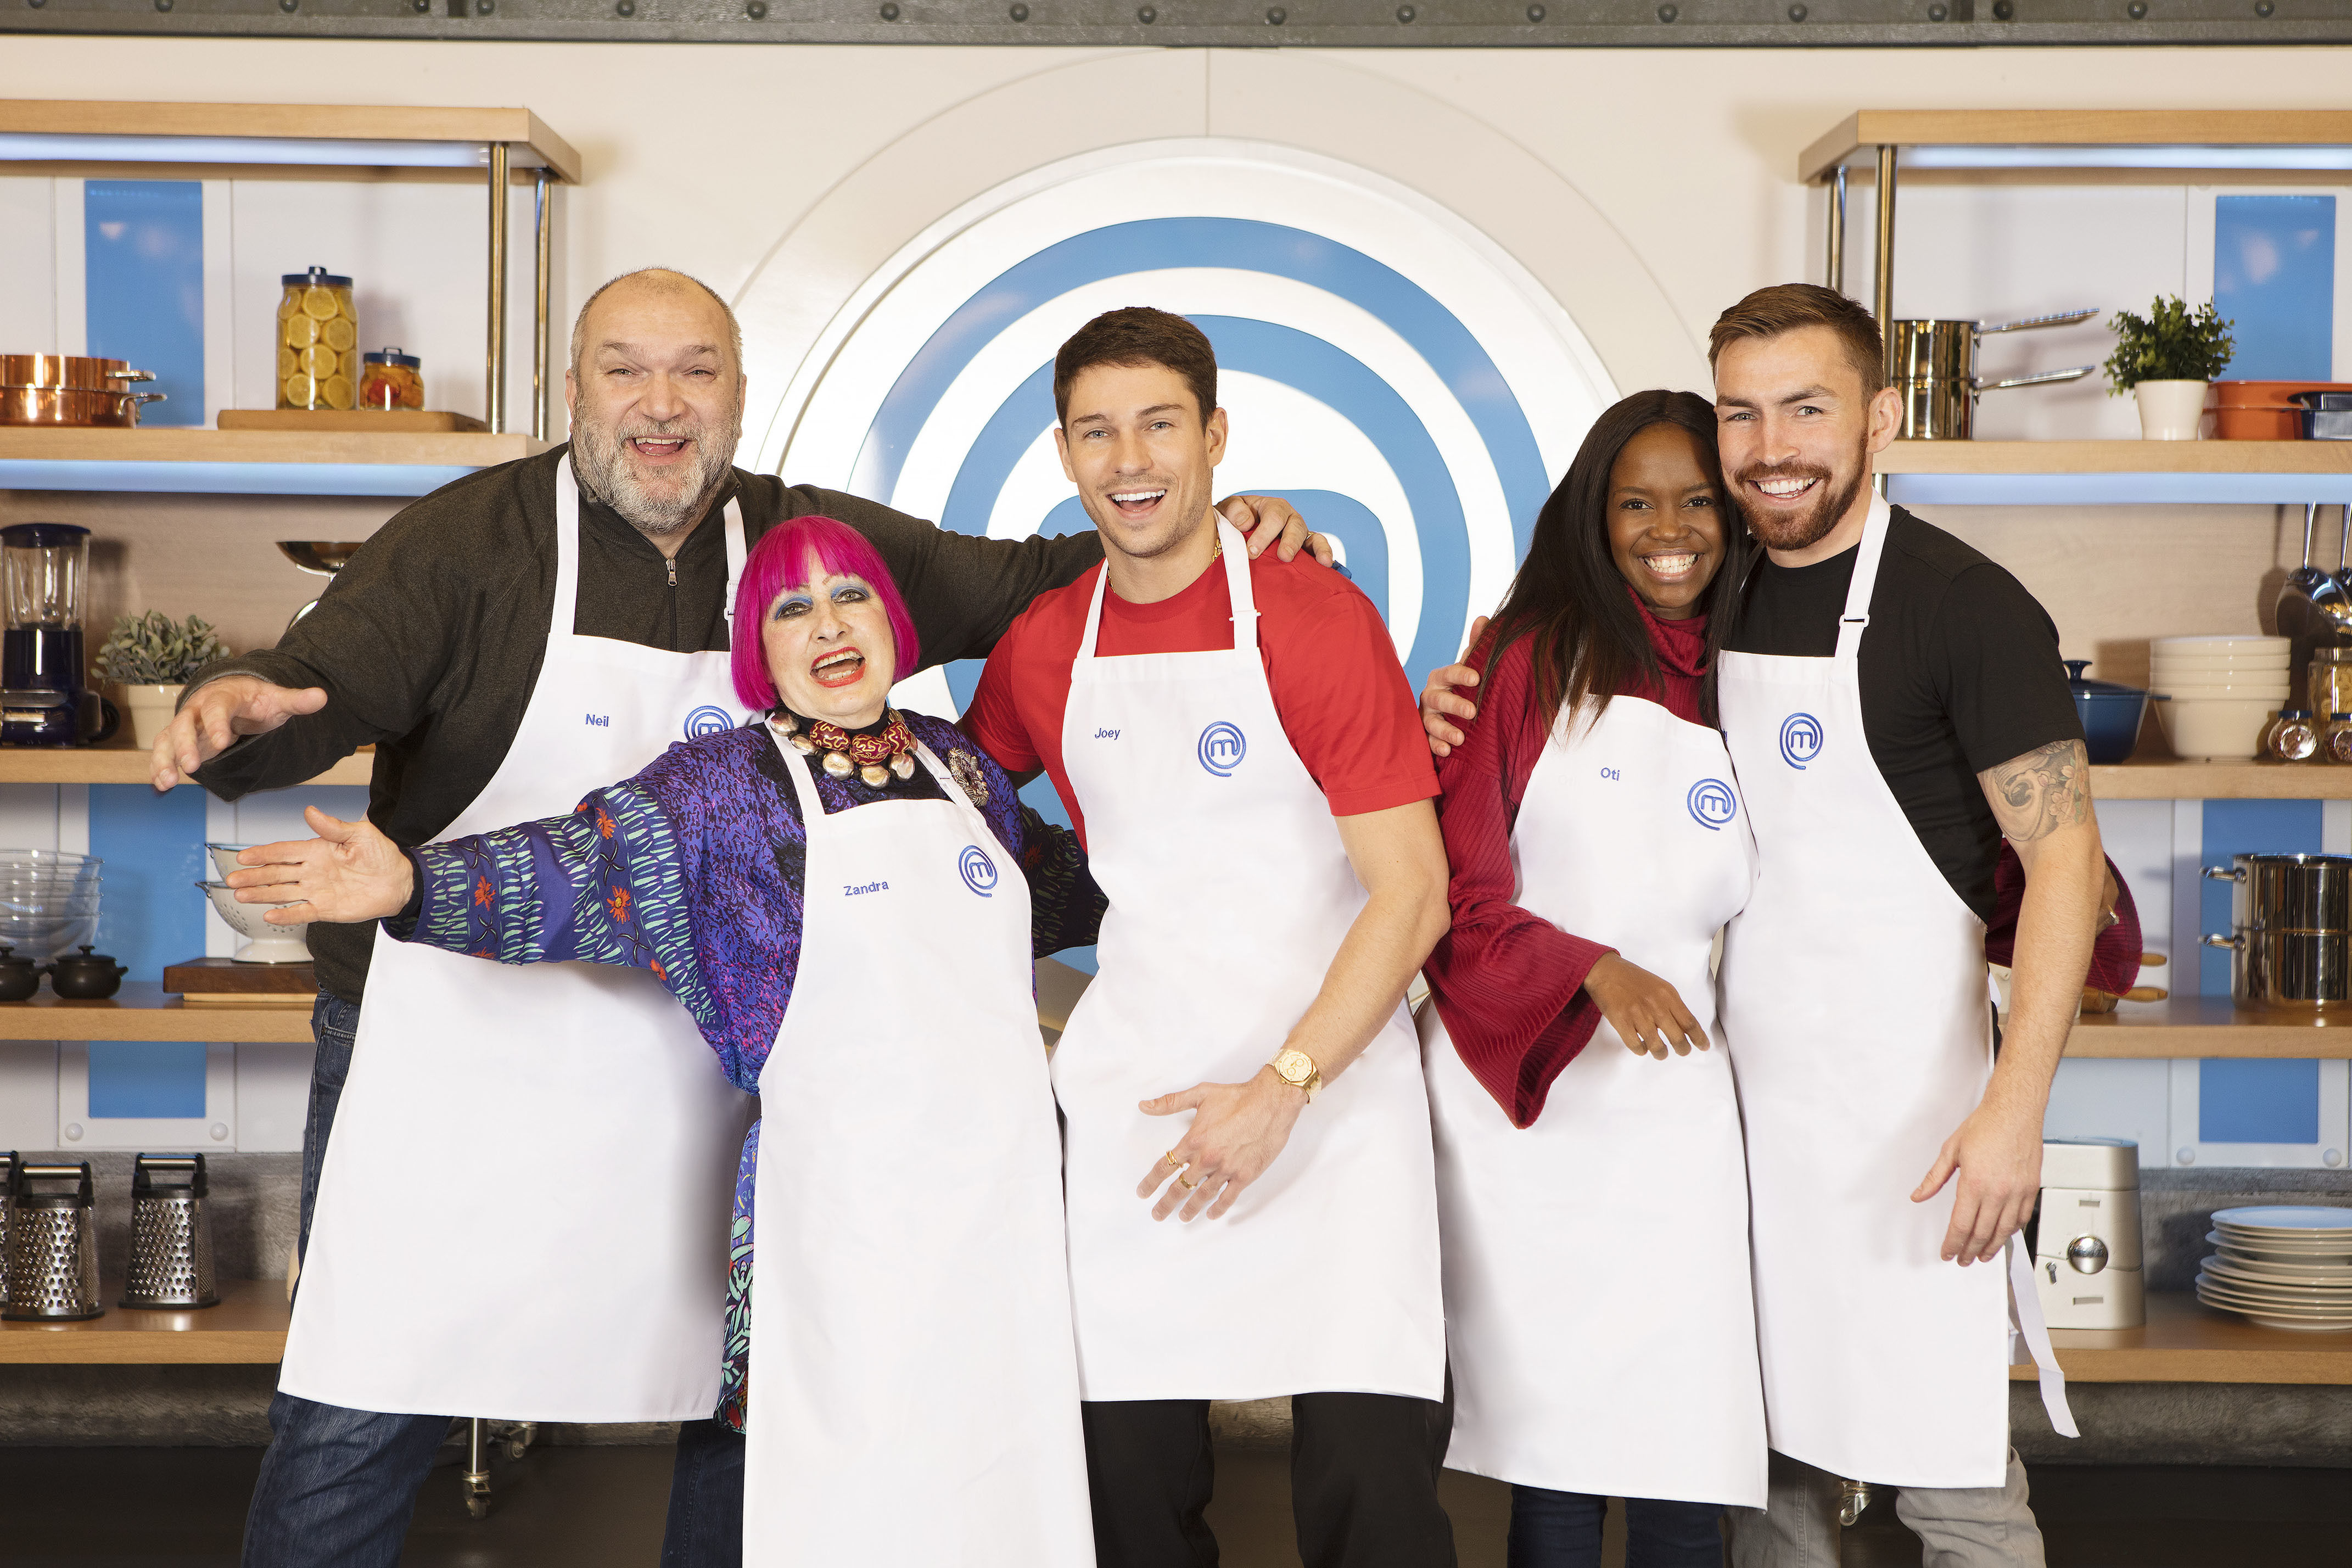 Undated BBC Handout Photo from Celebrity Masterchef. Pictured: (L-R) Neil Ruddock, Zandra Rhodes, Joey Essex, Oti Mabuse and Andy Grant. See PA Feature SHOWBIZ TV Essex. Picture credit should read: PA Photo/BBC/Shine TV. WARNING: This picture must only be used to accompany PA Feature SHOWBIZ TV Essex. WARNING: Use of this copyright image is subject to the terms of use of BBC Pictures' BBC Digital Picture Service. In particular, this image may only be published in print for editorial use during the publicity period (the weeks immediately leading up to and including the transmission week of the relevant programme or event and three review weeks following) for the purpose of publicising the programme, person or service pictured and provided the BBC and the copyright holder in the caption are credited. Any use of this image on the internet and other online communication services will require a separate prior agreement with BBC Pictures. For any other purpose whatsoever, including advertising and commercial prior written approval from the copyright holder will be required.